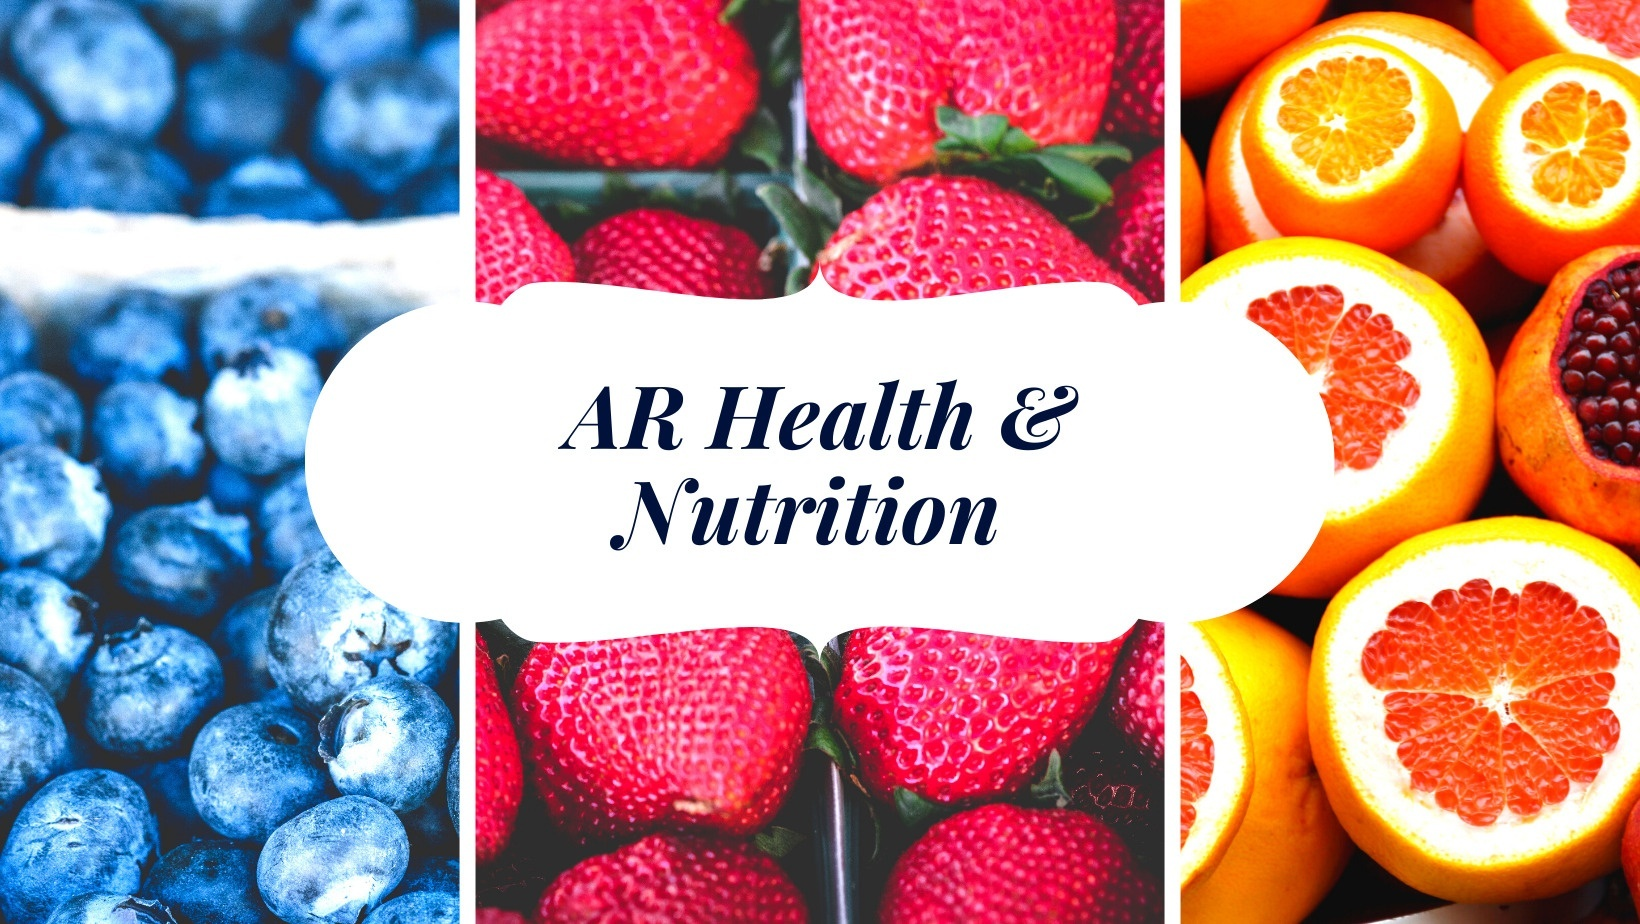 AR Health & Nutrition on Rank In The City | Juice Plus+ Distributor | (800) 315-1624 | Fruit and Vegetable Nutrition For A Healthy Lifestyle.